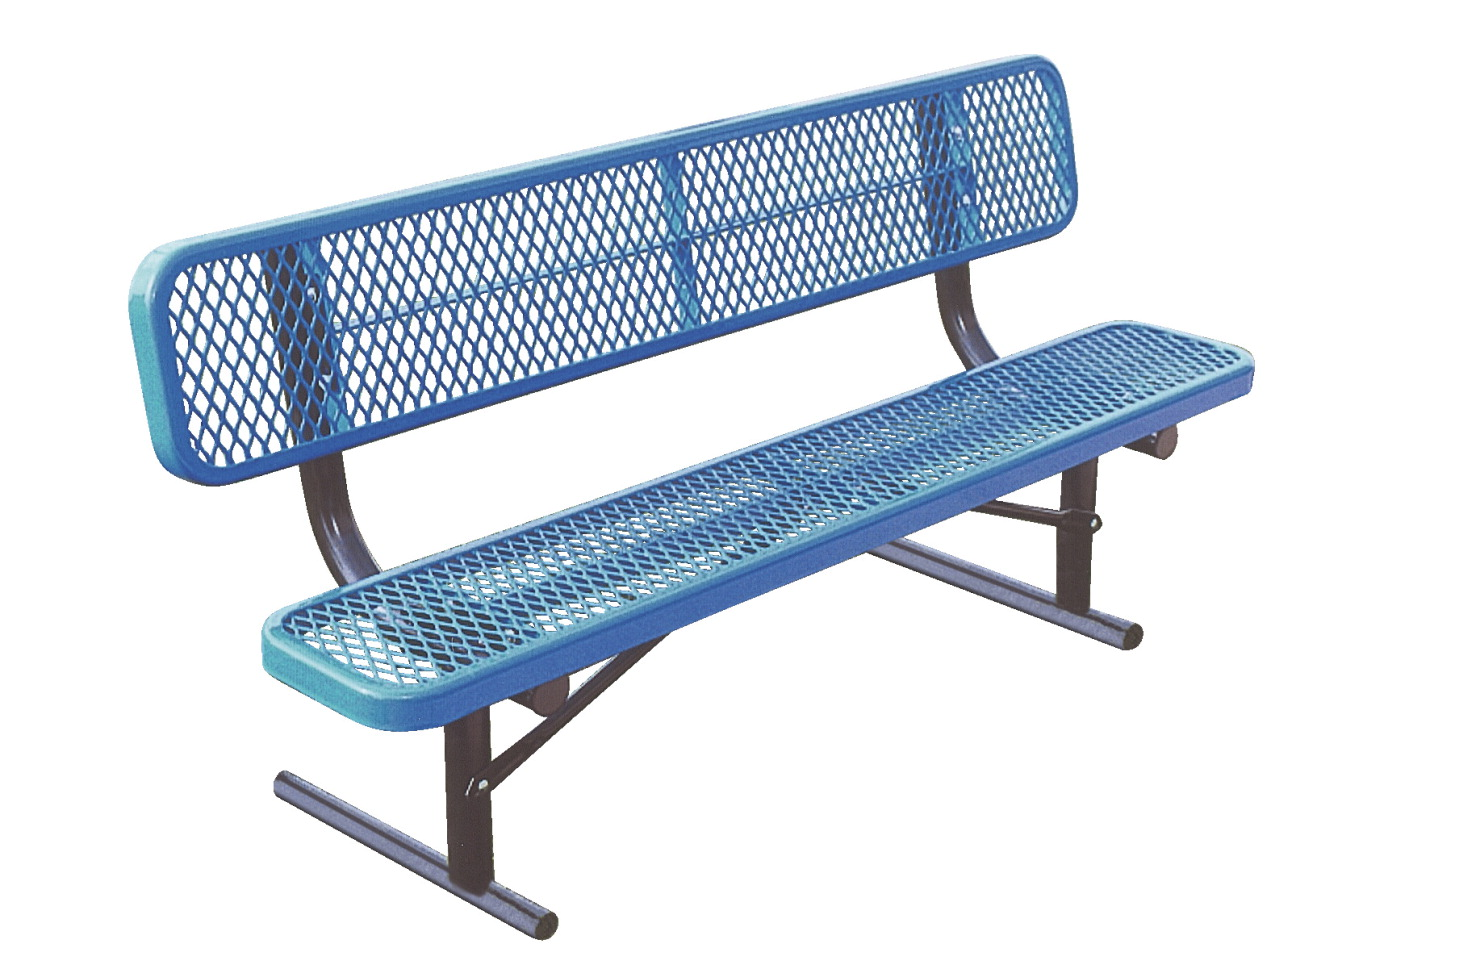 UltraSite UltraCoat Thermoplastic Bench with Back, Diamond Pattern, 72 x 22-1/4 x 3 Inches, Various Options